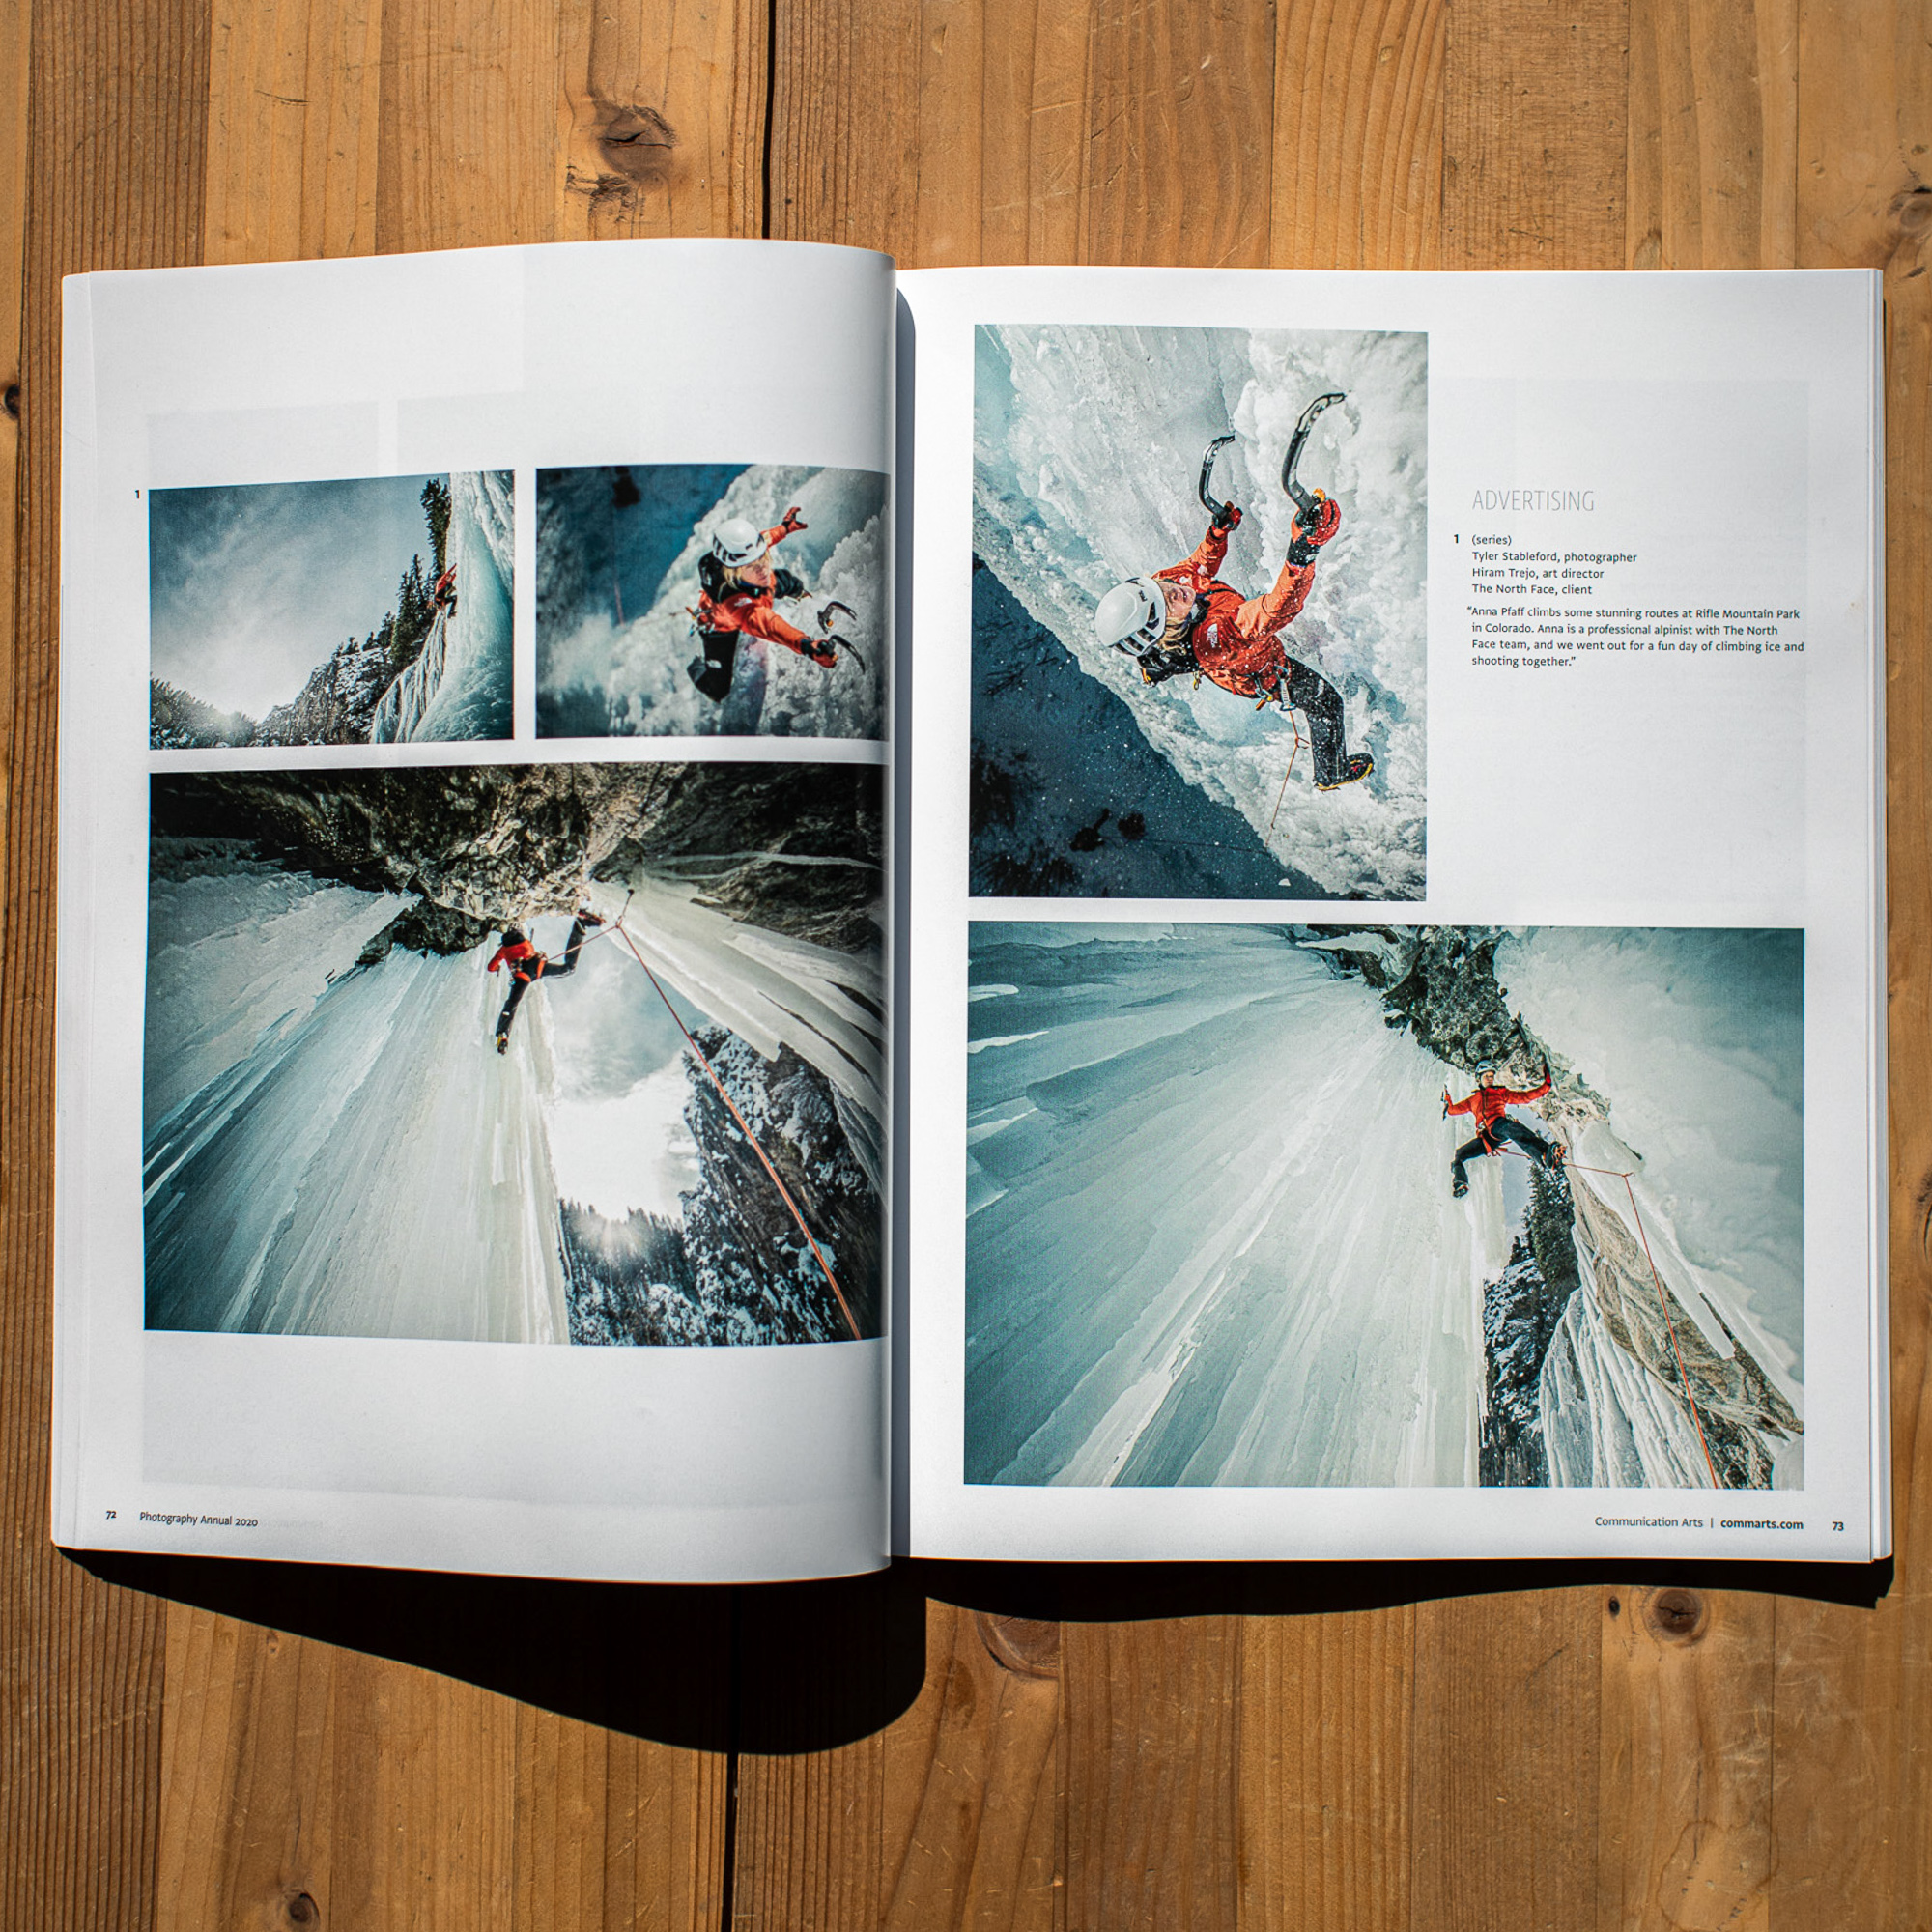 Tyler's photography campaign featuring The North Face alpinist Anna Pfaff is featured in the 2020 Communication Arts Photo Annual